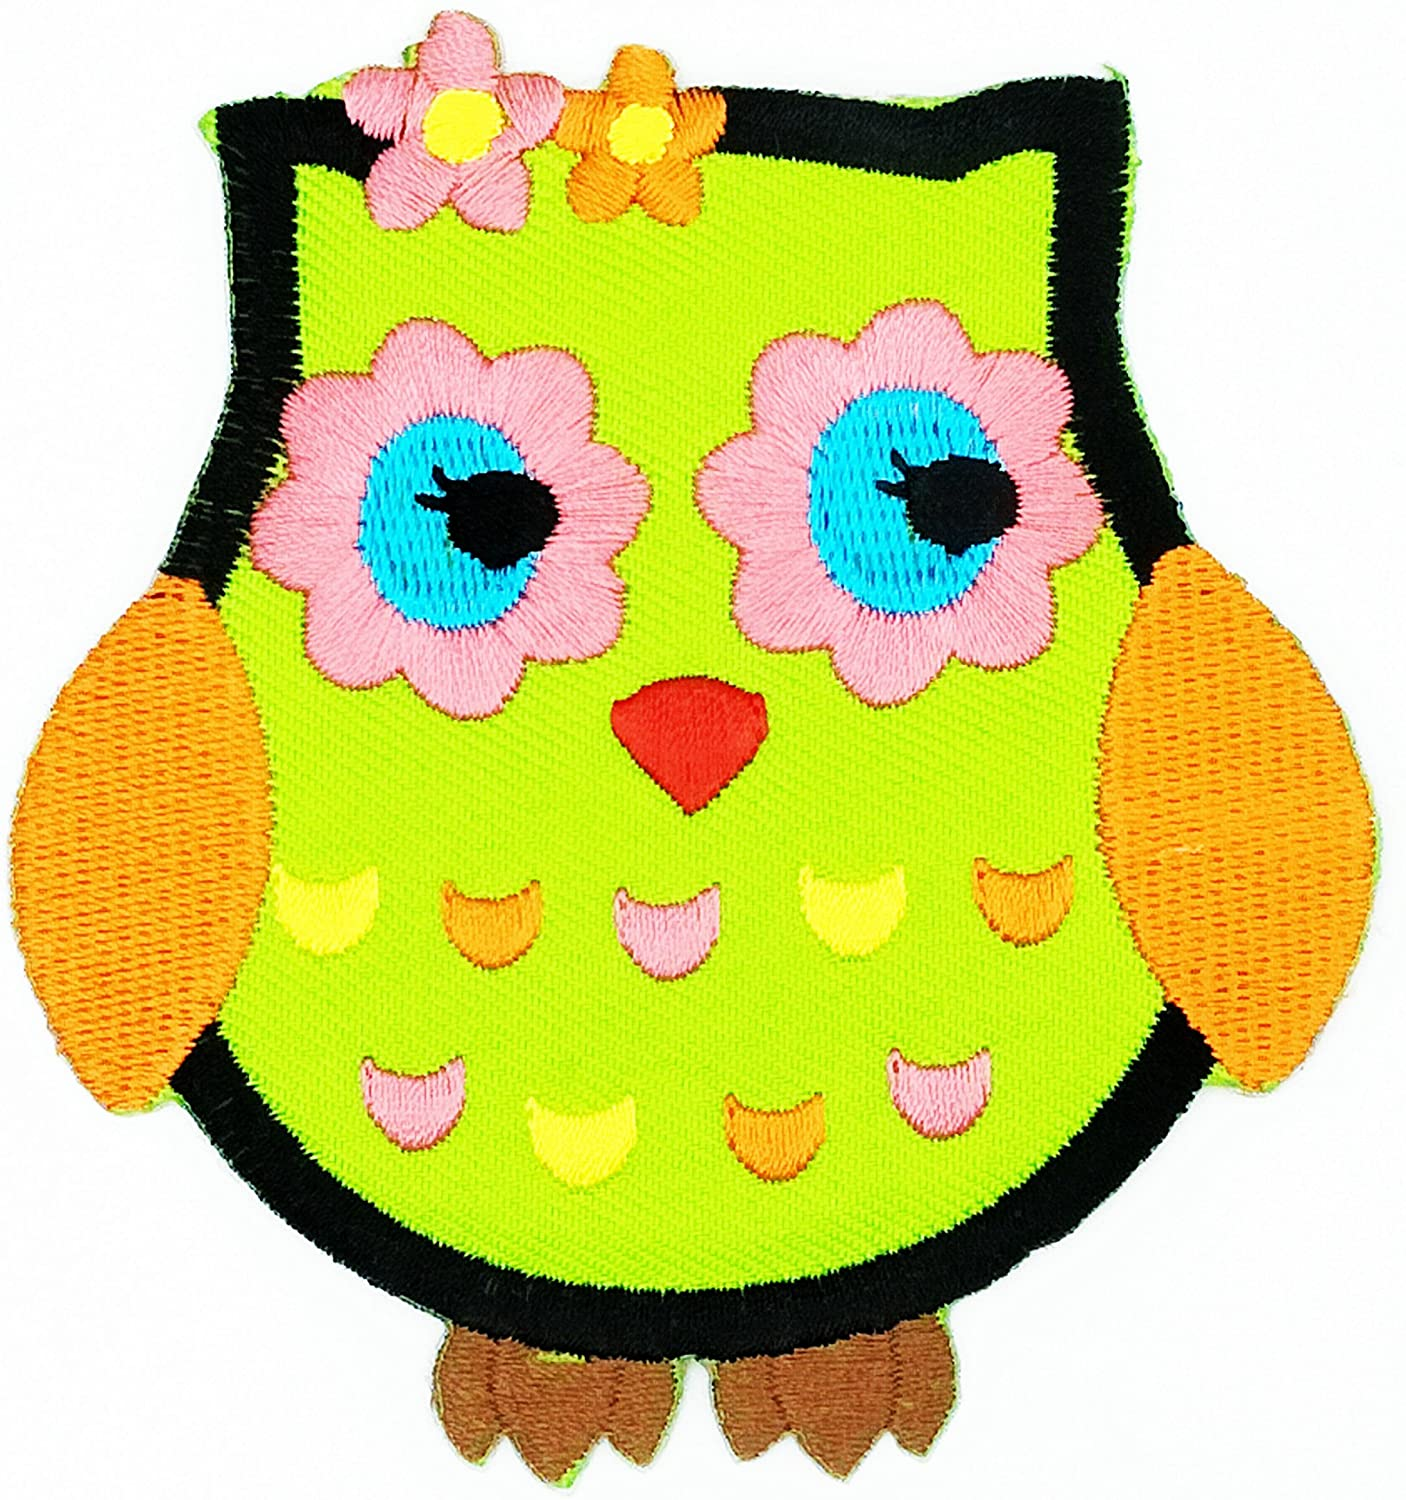 HHO CUTE PRETTY GREEN OWL patch Embroidered DIY Patches, Cute Applique Sew Iron on Kids Craft Patch for Bags Jackets Jeans Clothes